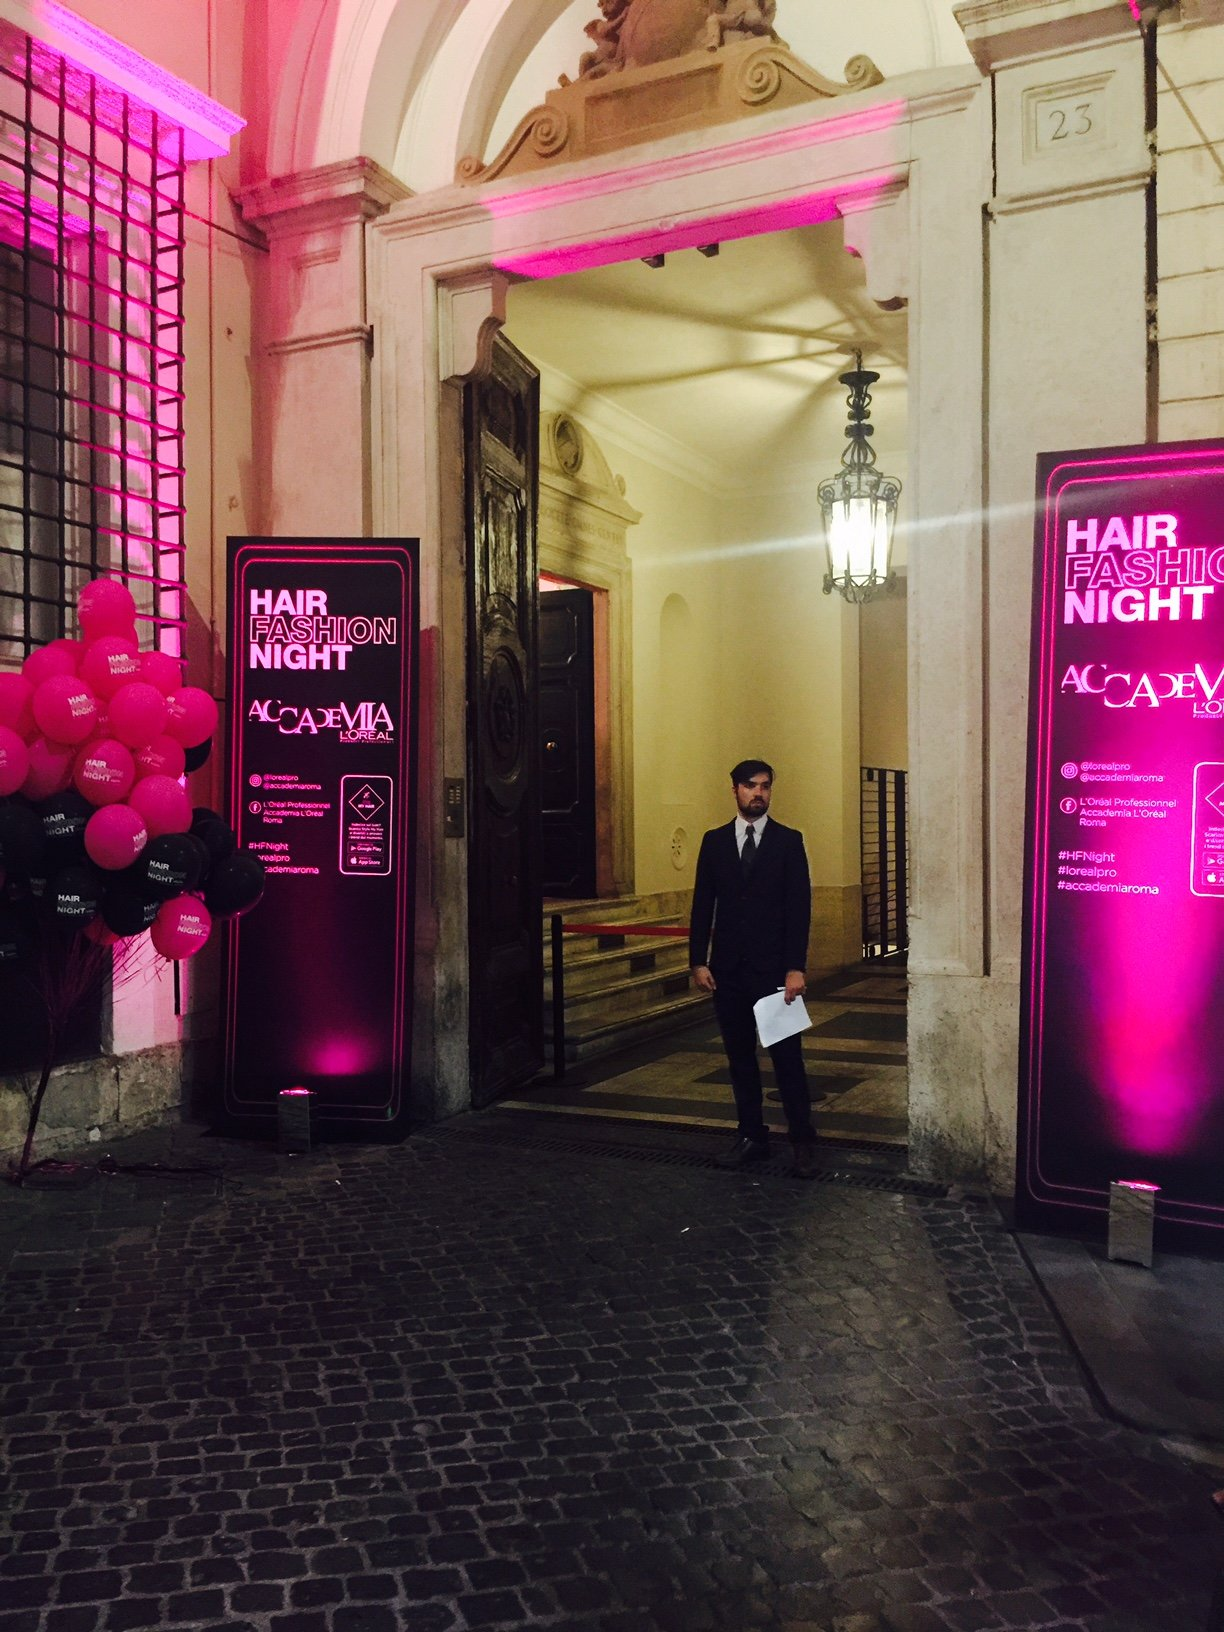 All'Accademia L'Oréal per la Hair Fashion Night